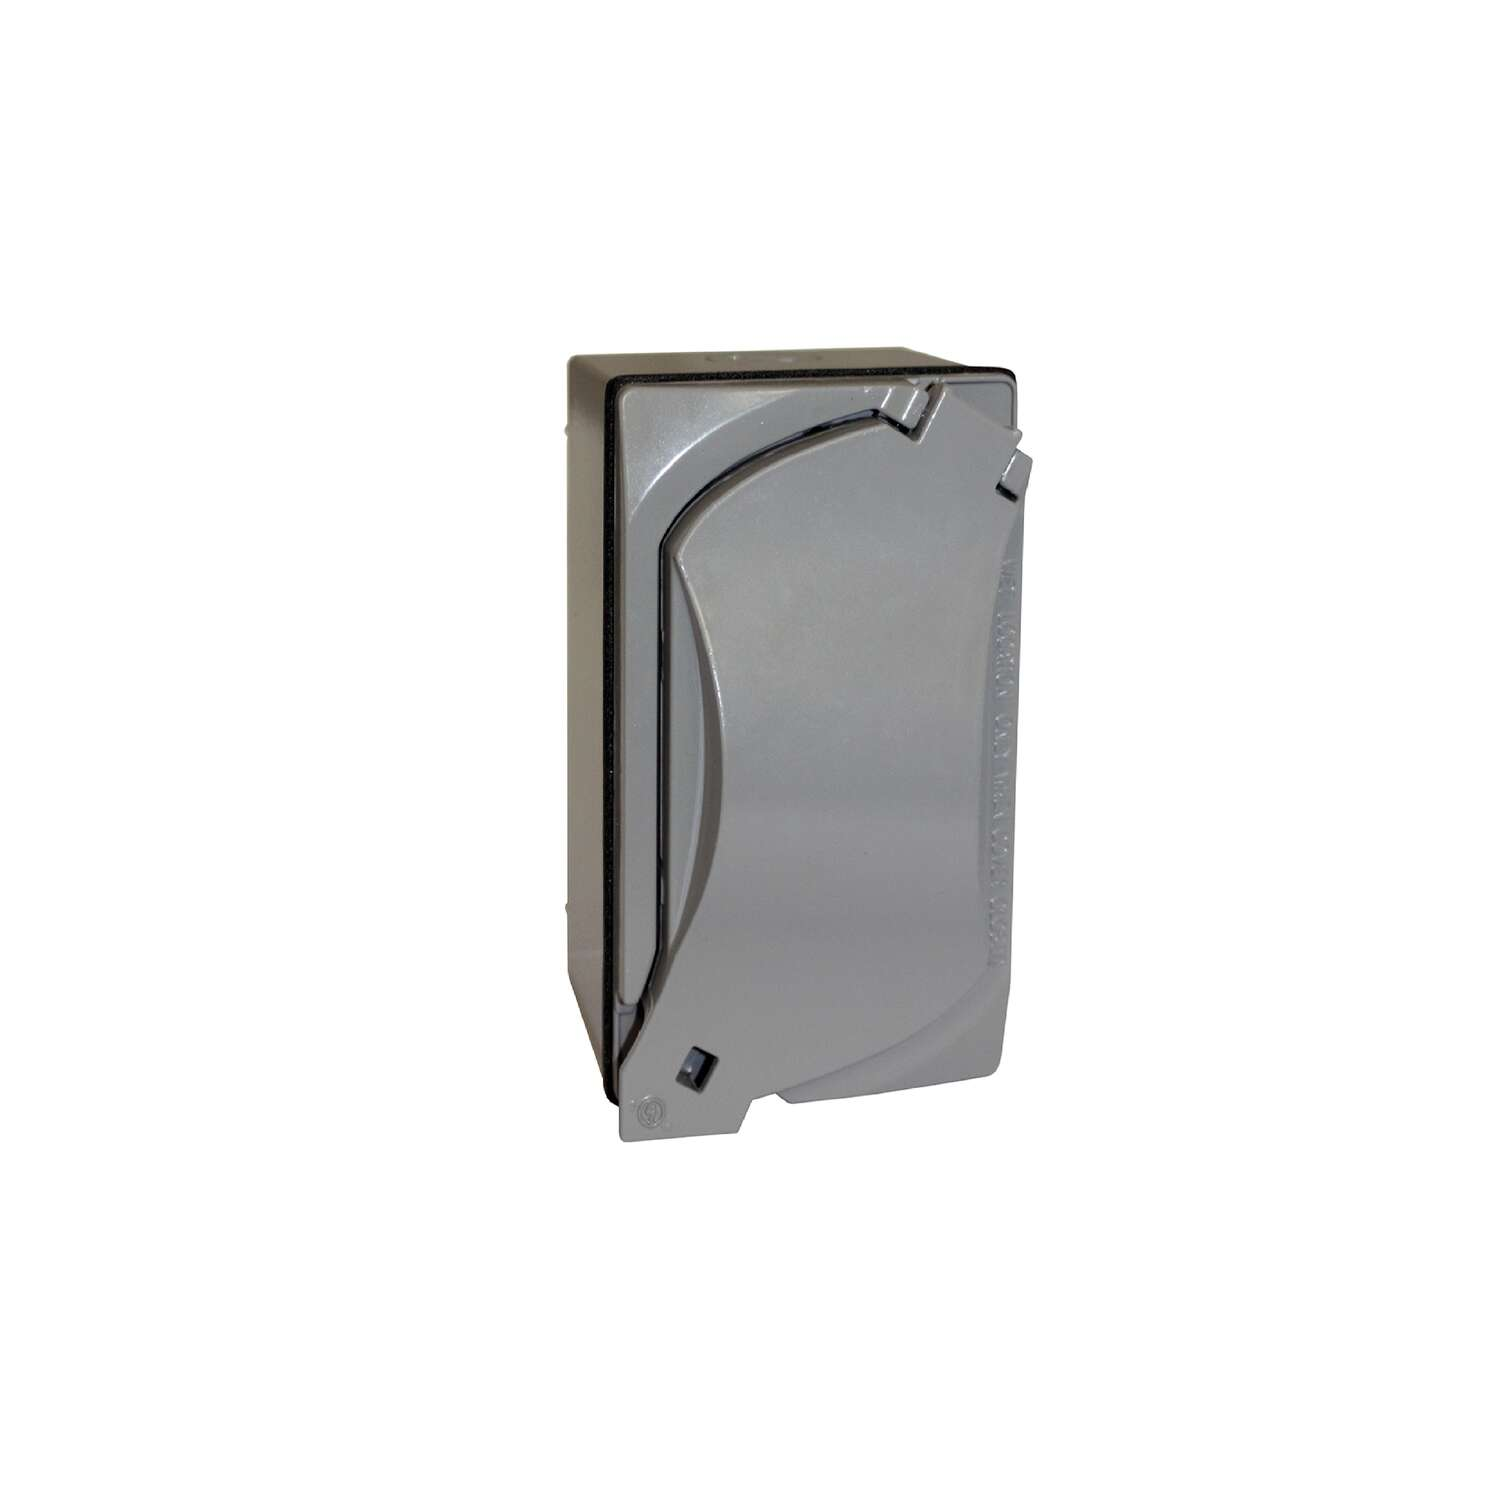 Sigma Electric Rectangle Metal 1 gang GFCI Outlet Kit For Wet Locations